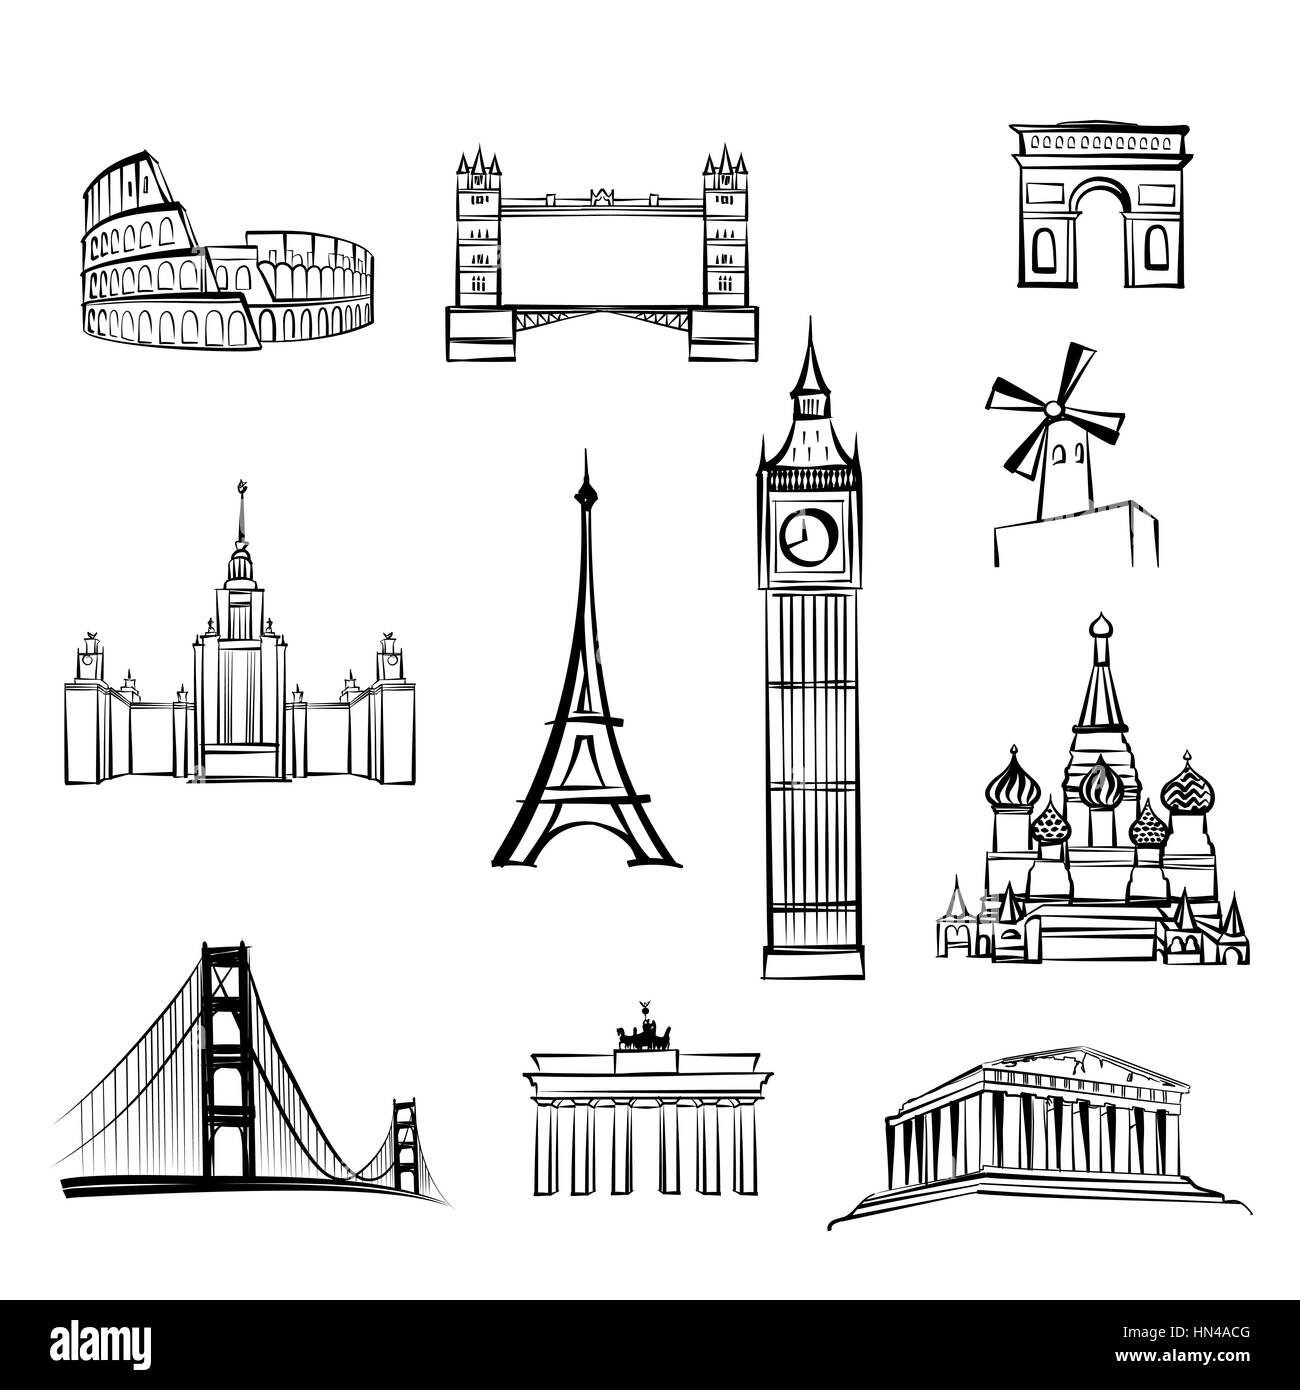 world tourist attractions symbols World famous city landmarks Travel icon set Doodle engraved sightseeings of London, - Stock Vector